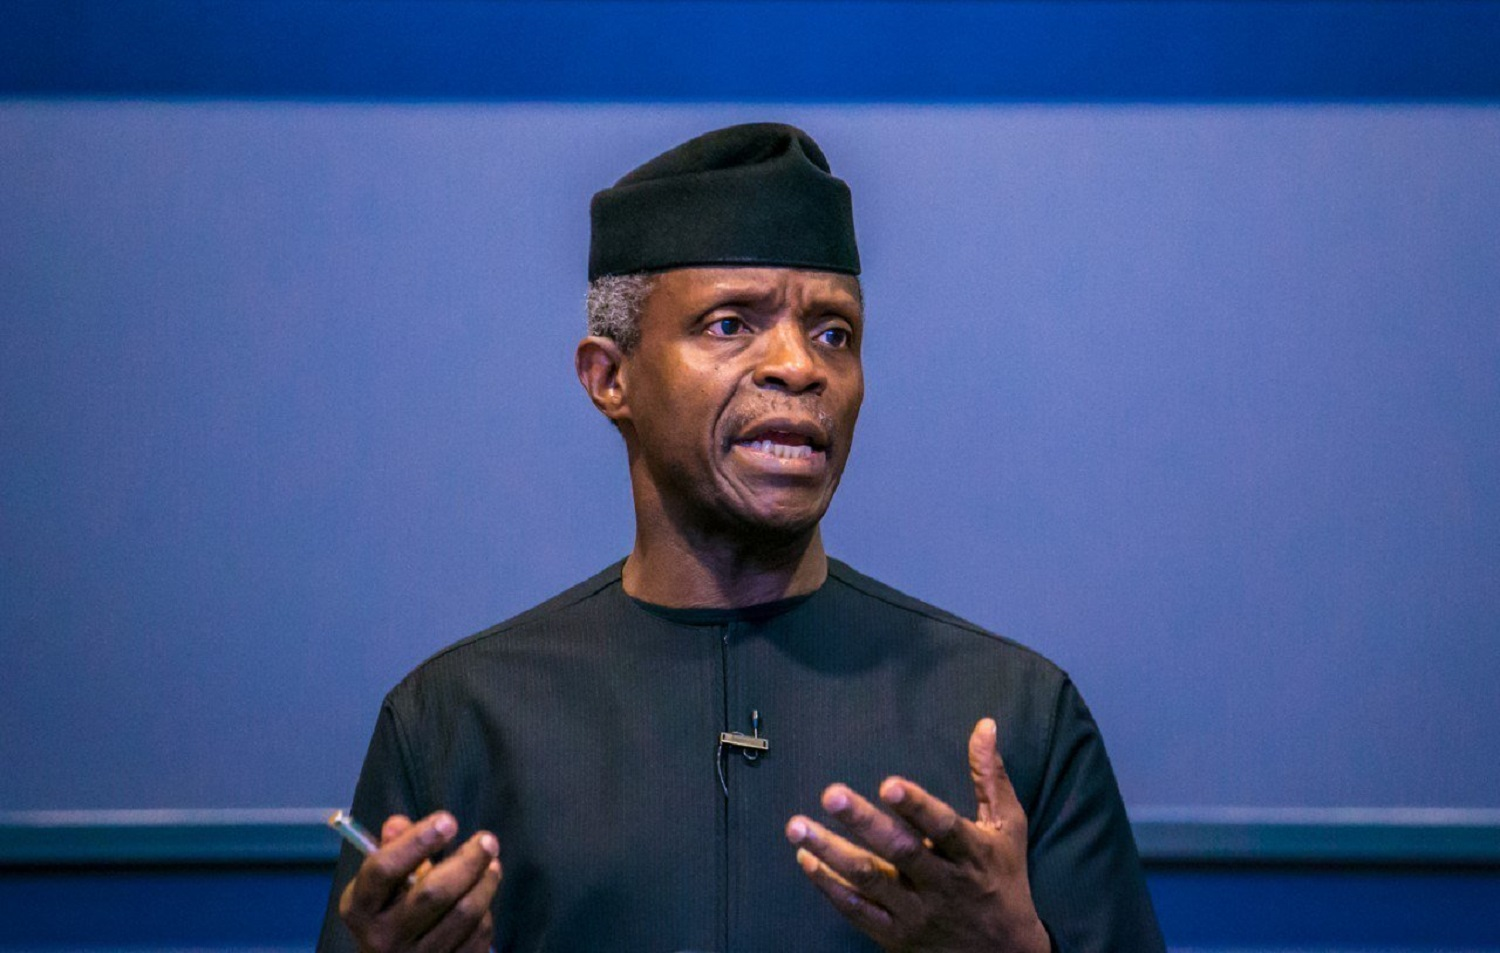 Osinbajo encourages people to be committed to Nigeria's stability and peace.